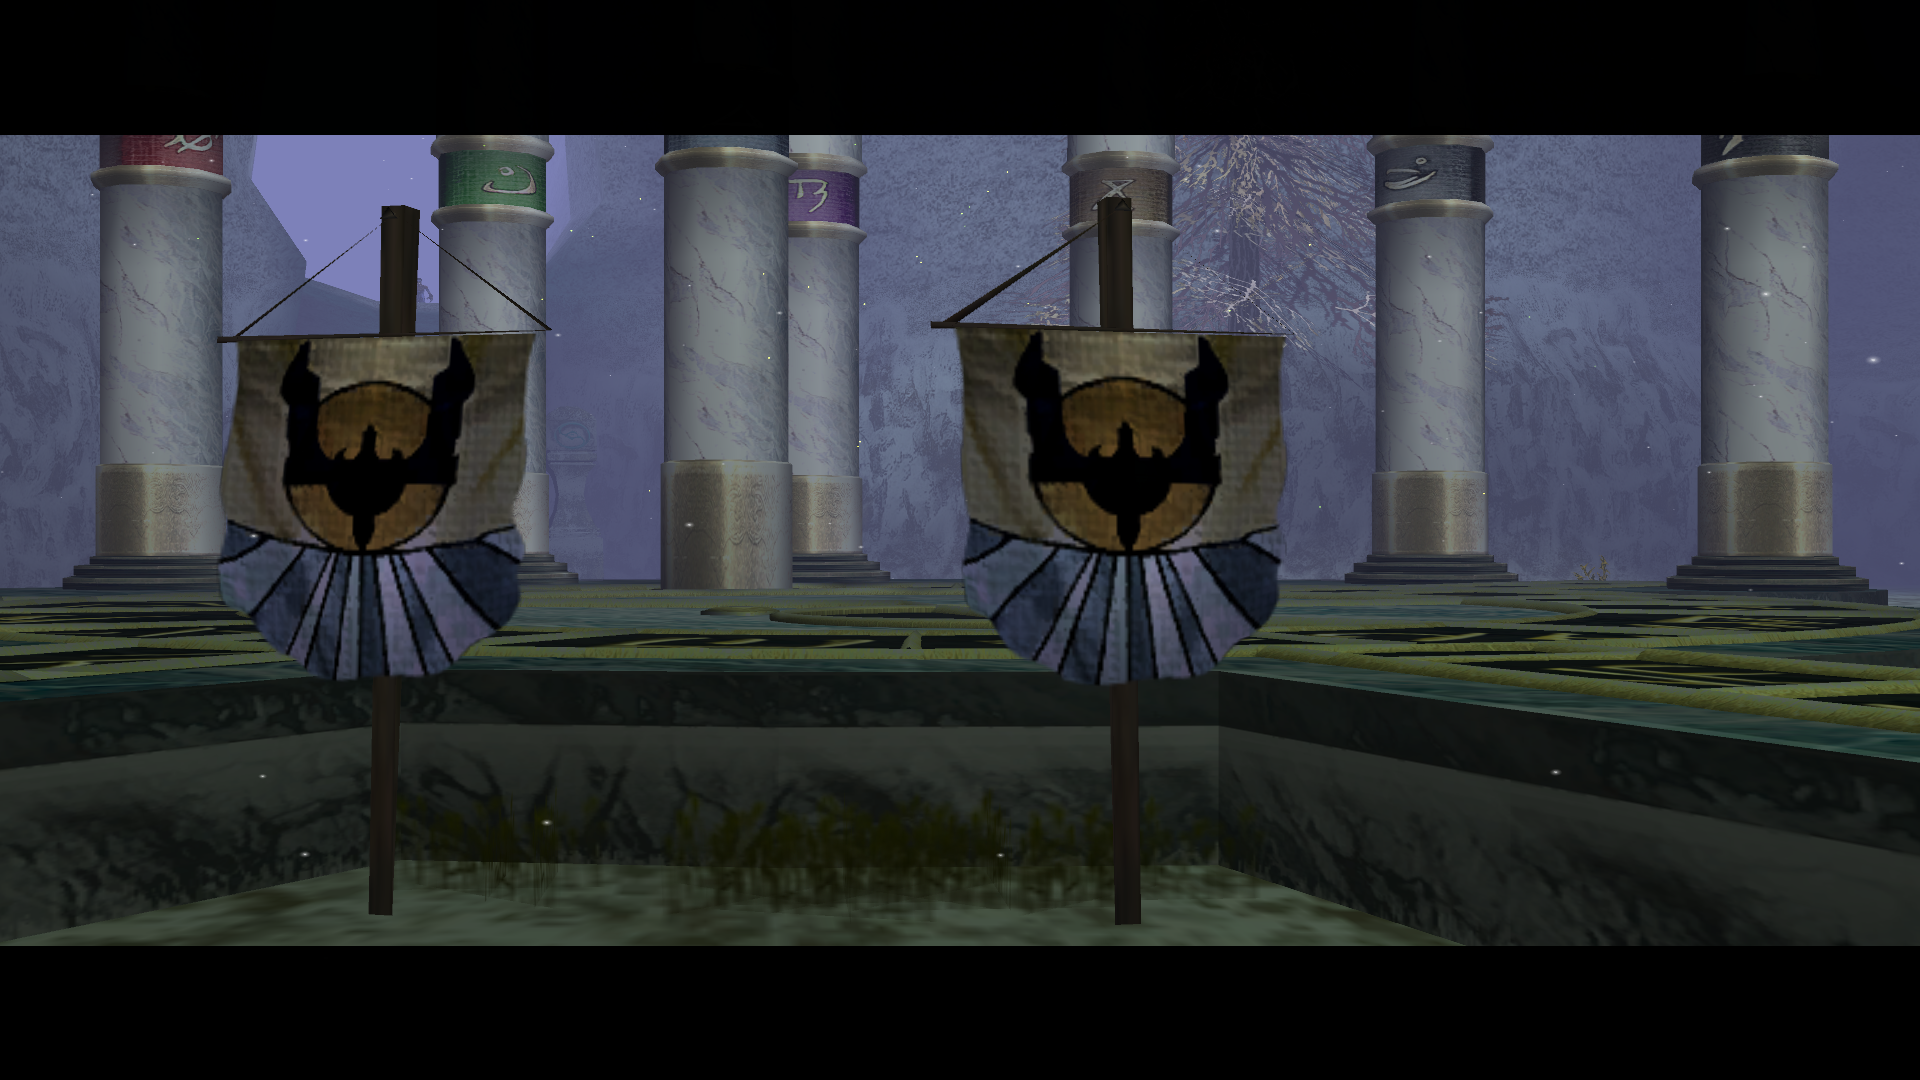 SR2--EraC-Cutscene-KillingFields-Alternate-Pillars-07.png